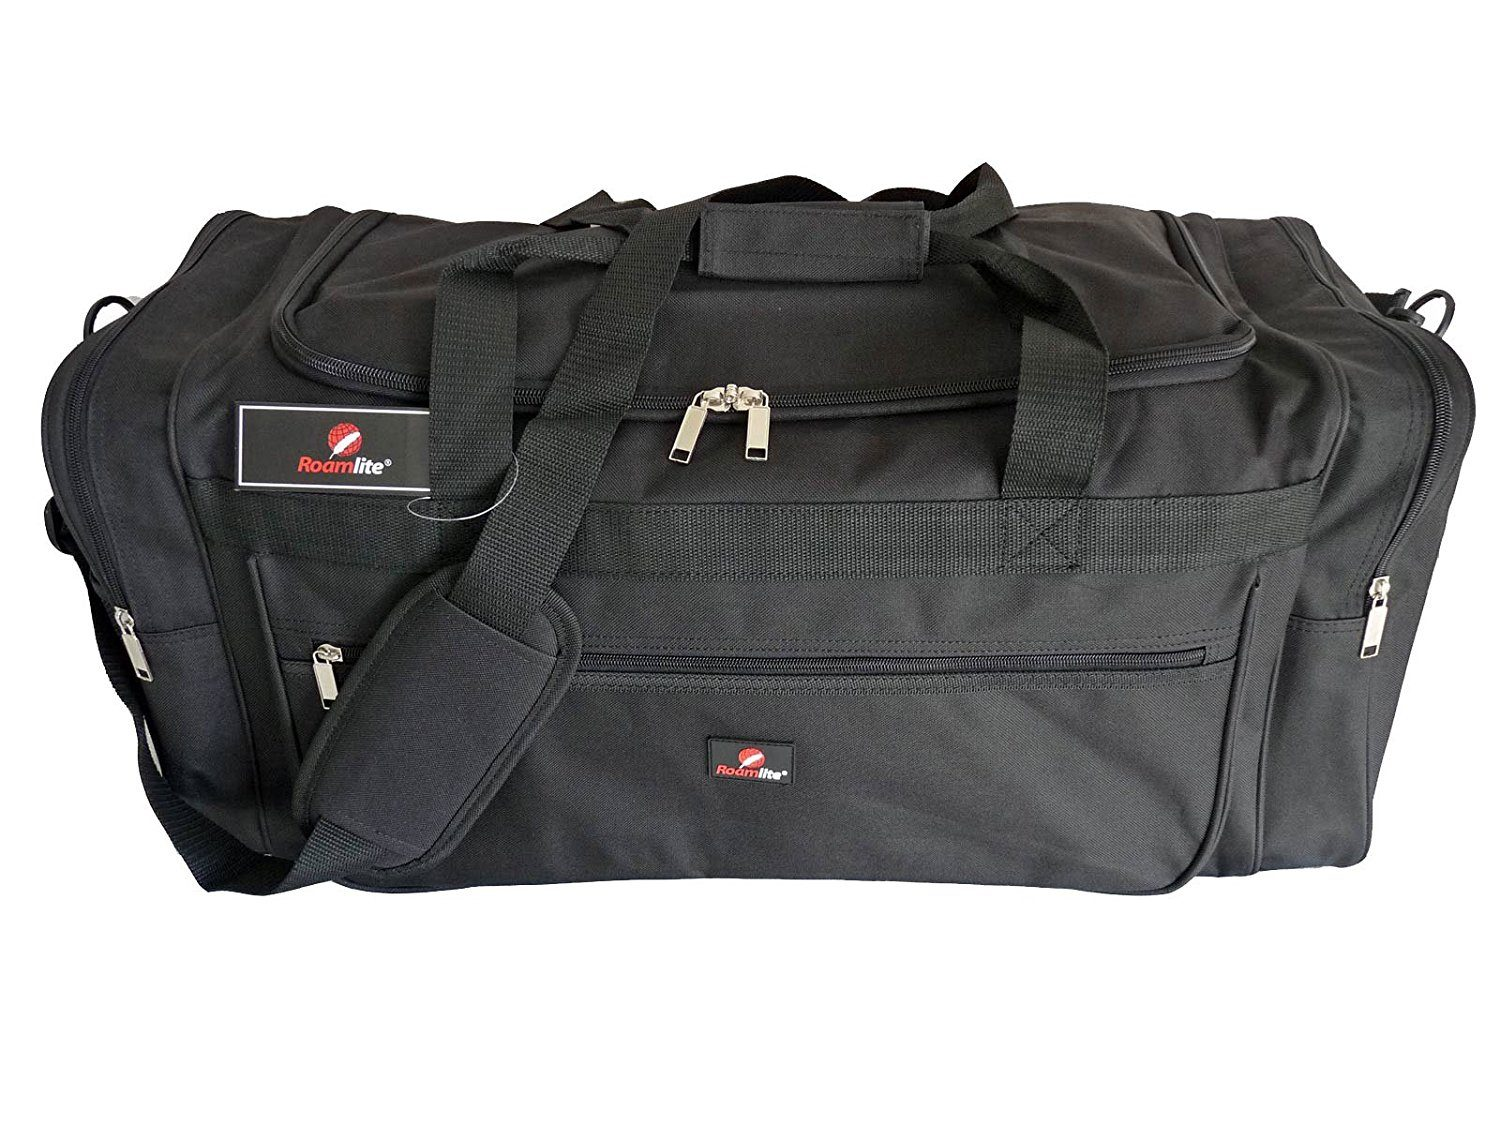 Holdalls Large Extra Large Size - Weekend or Very Big Overnight Bag